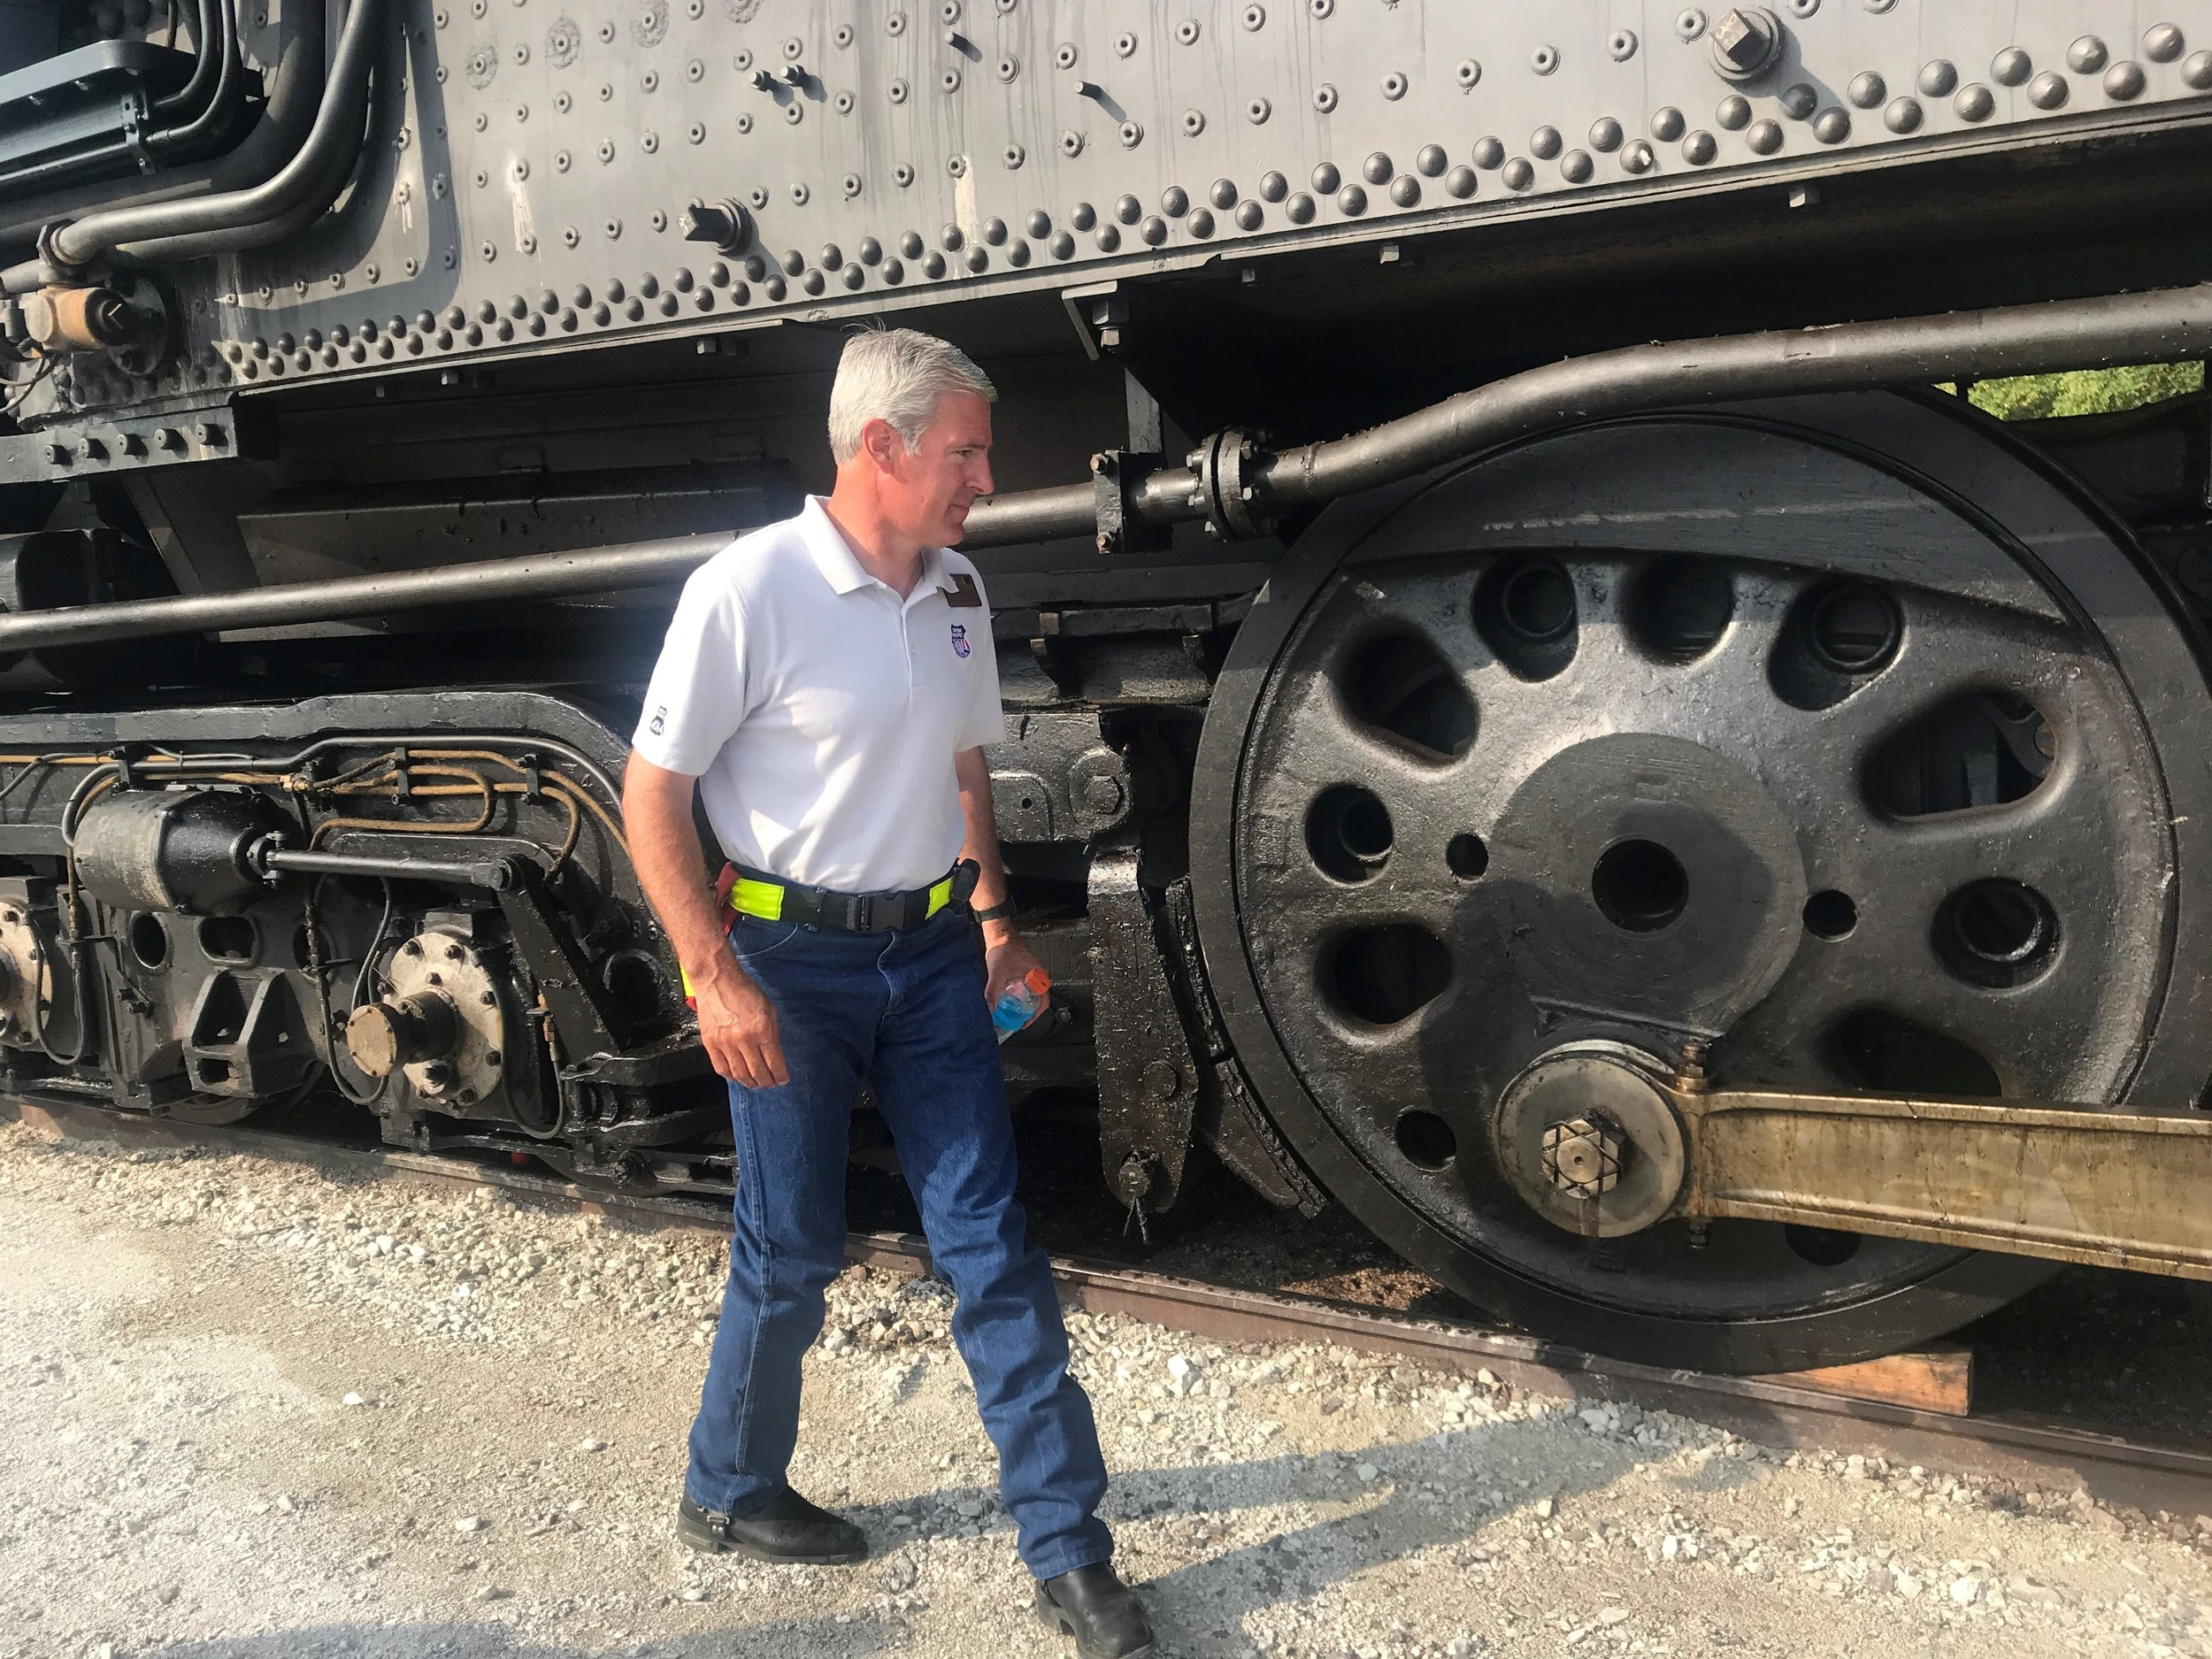 Ed Dickens takes a closer look at the locomotive he helped to restore, and for scale, those wheels are close to five feet in diameter